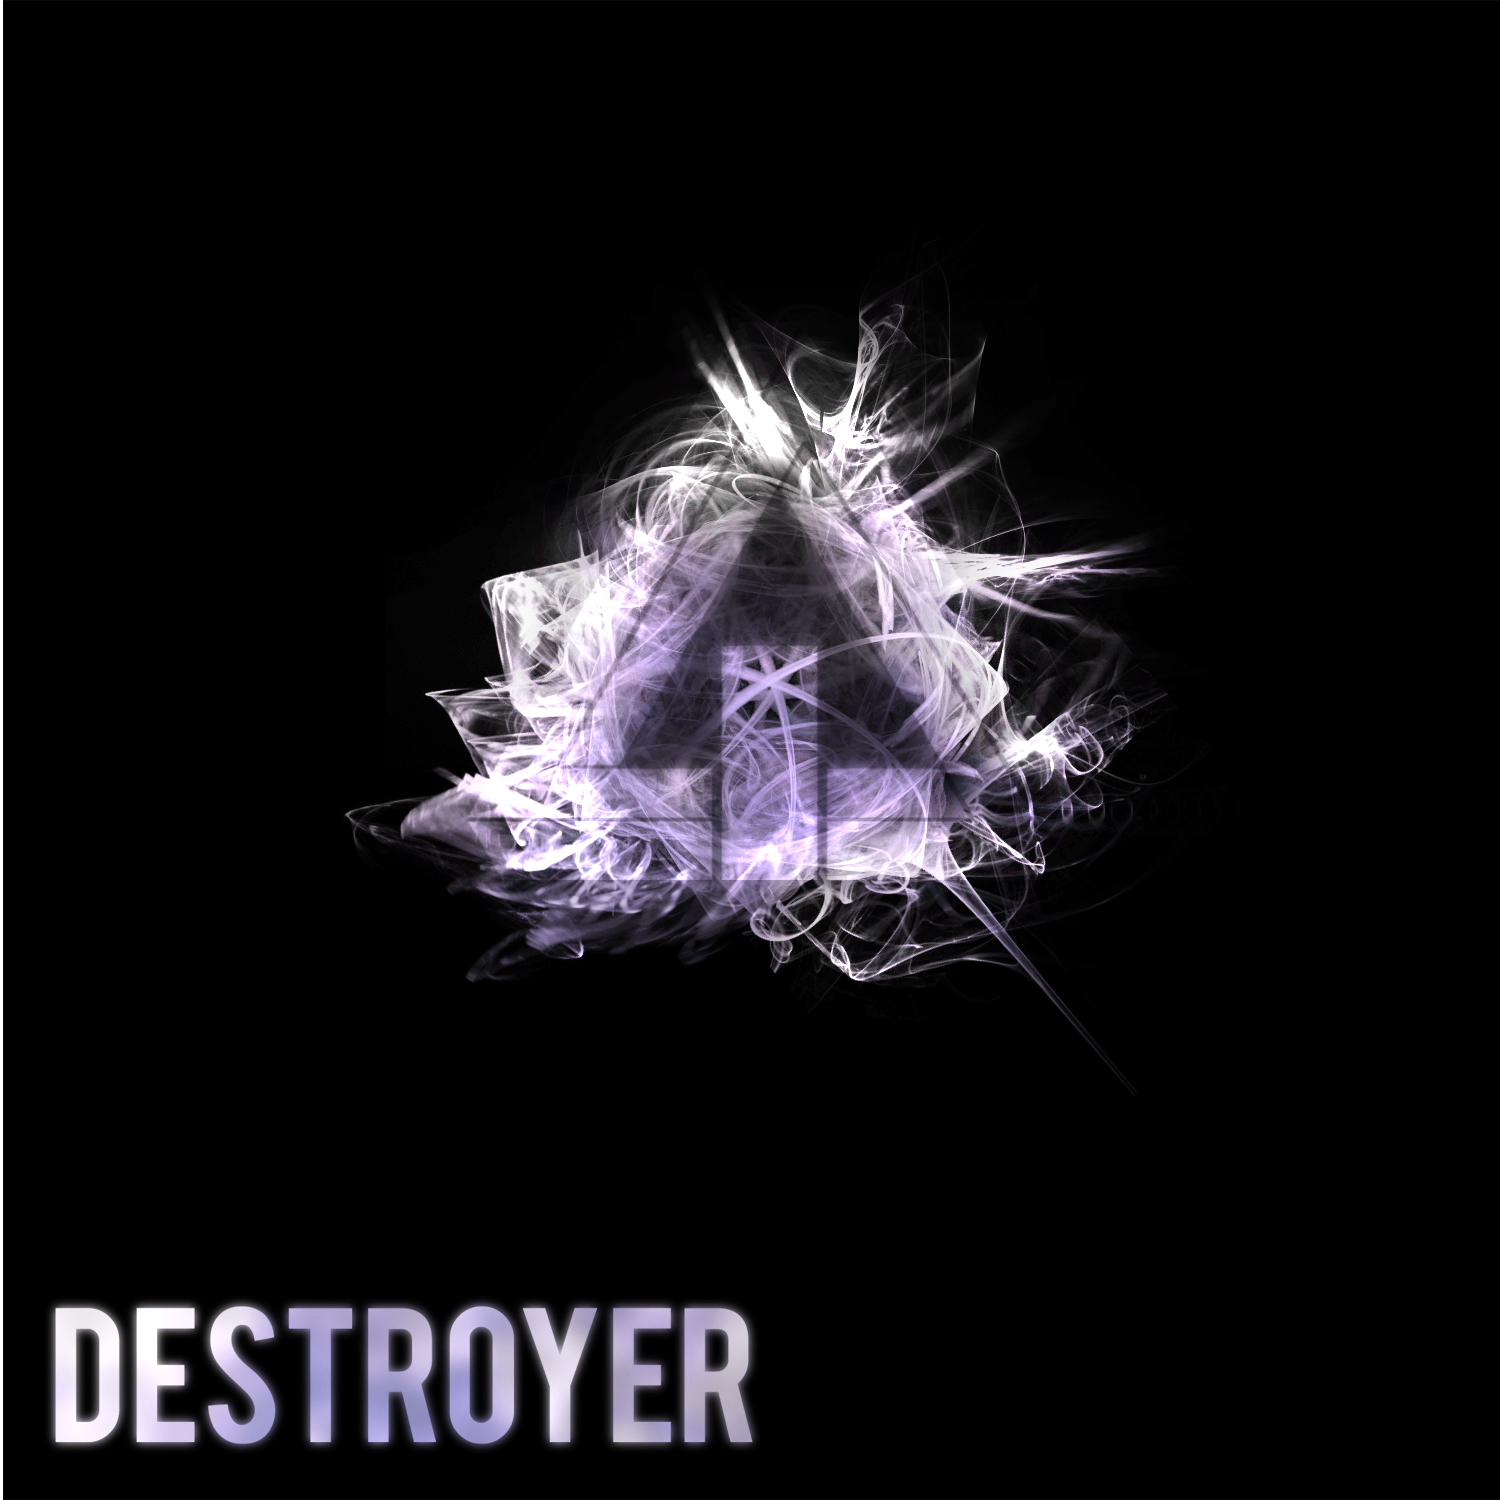 Destroyer 4C by Mird